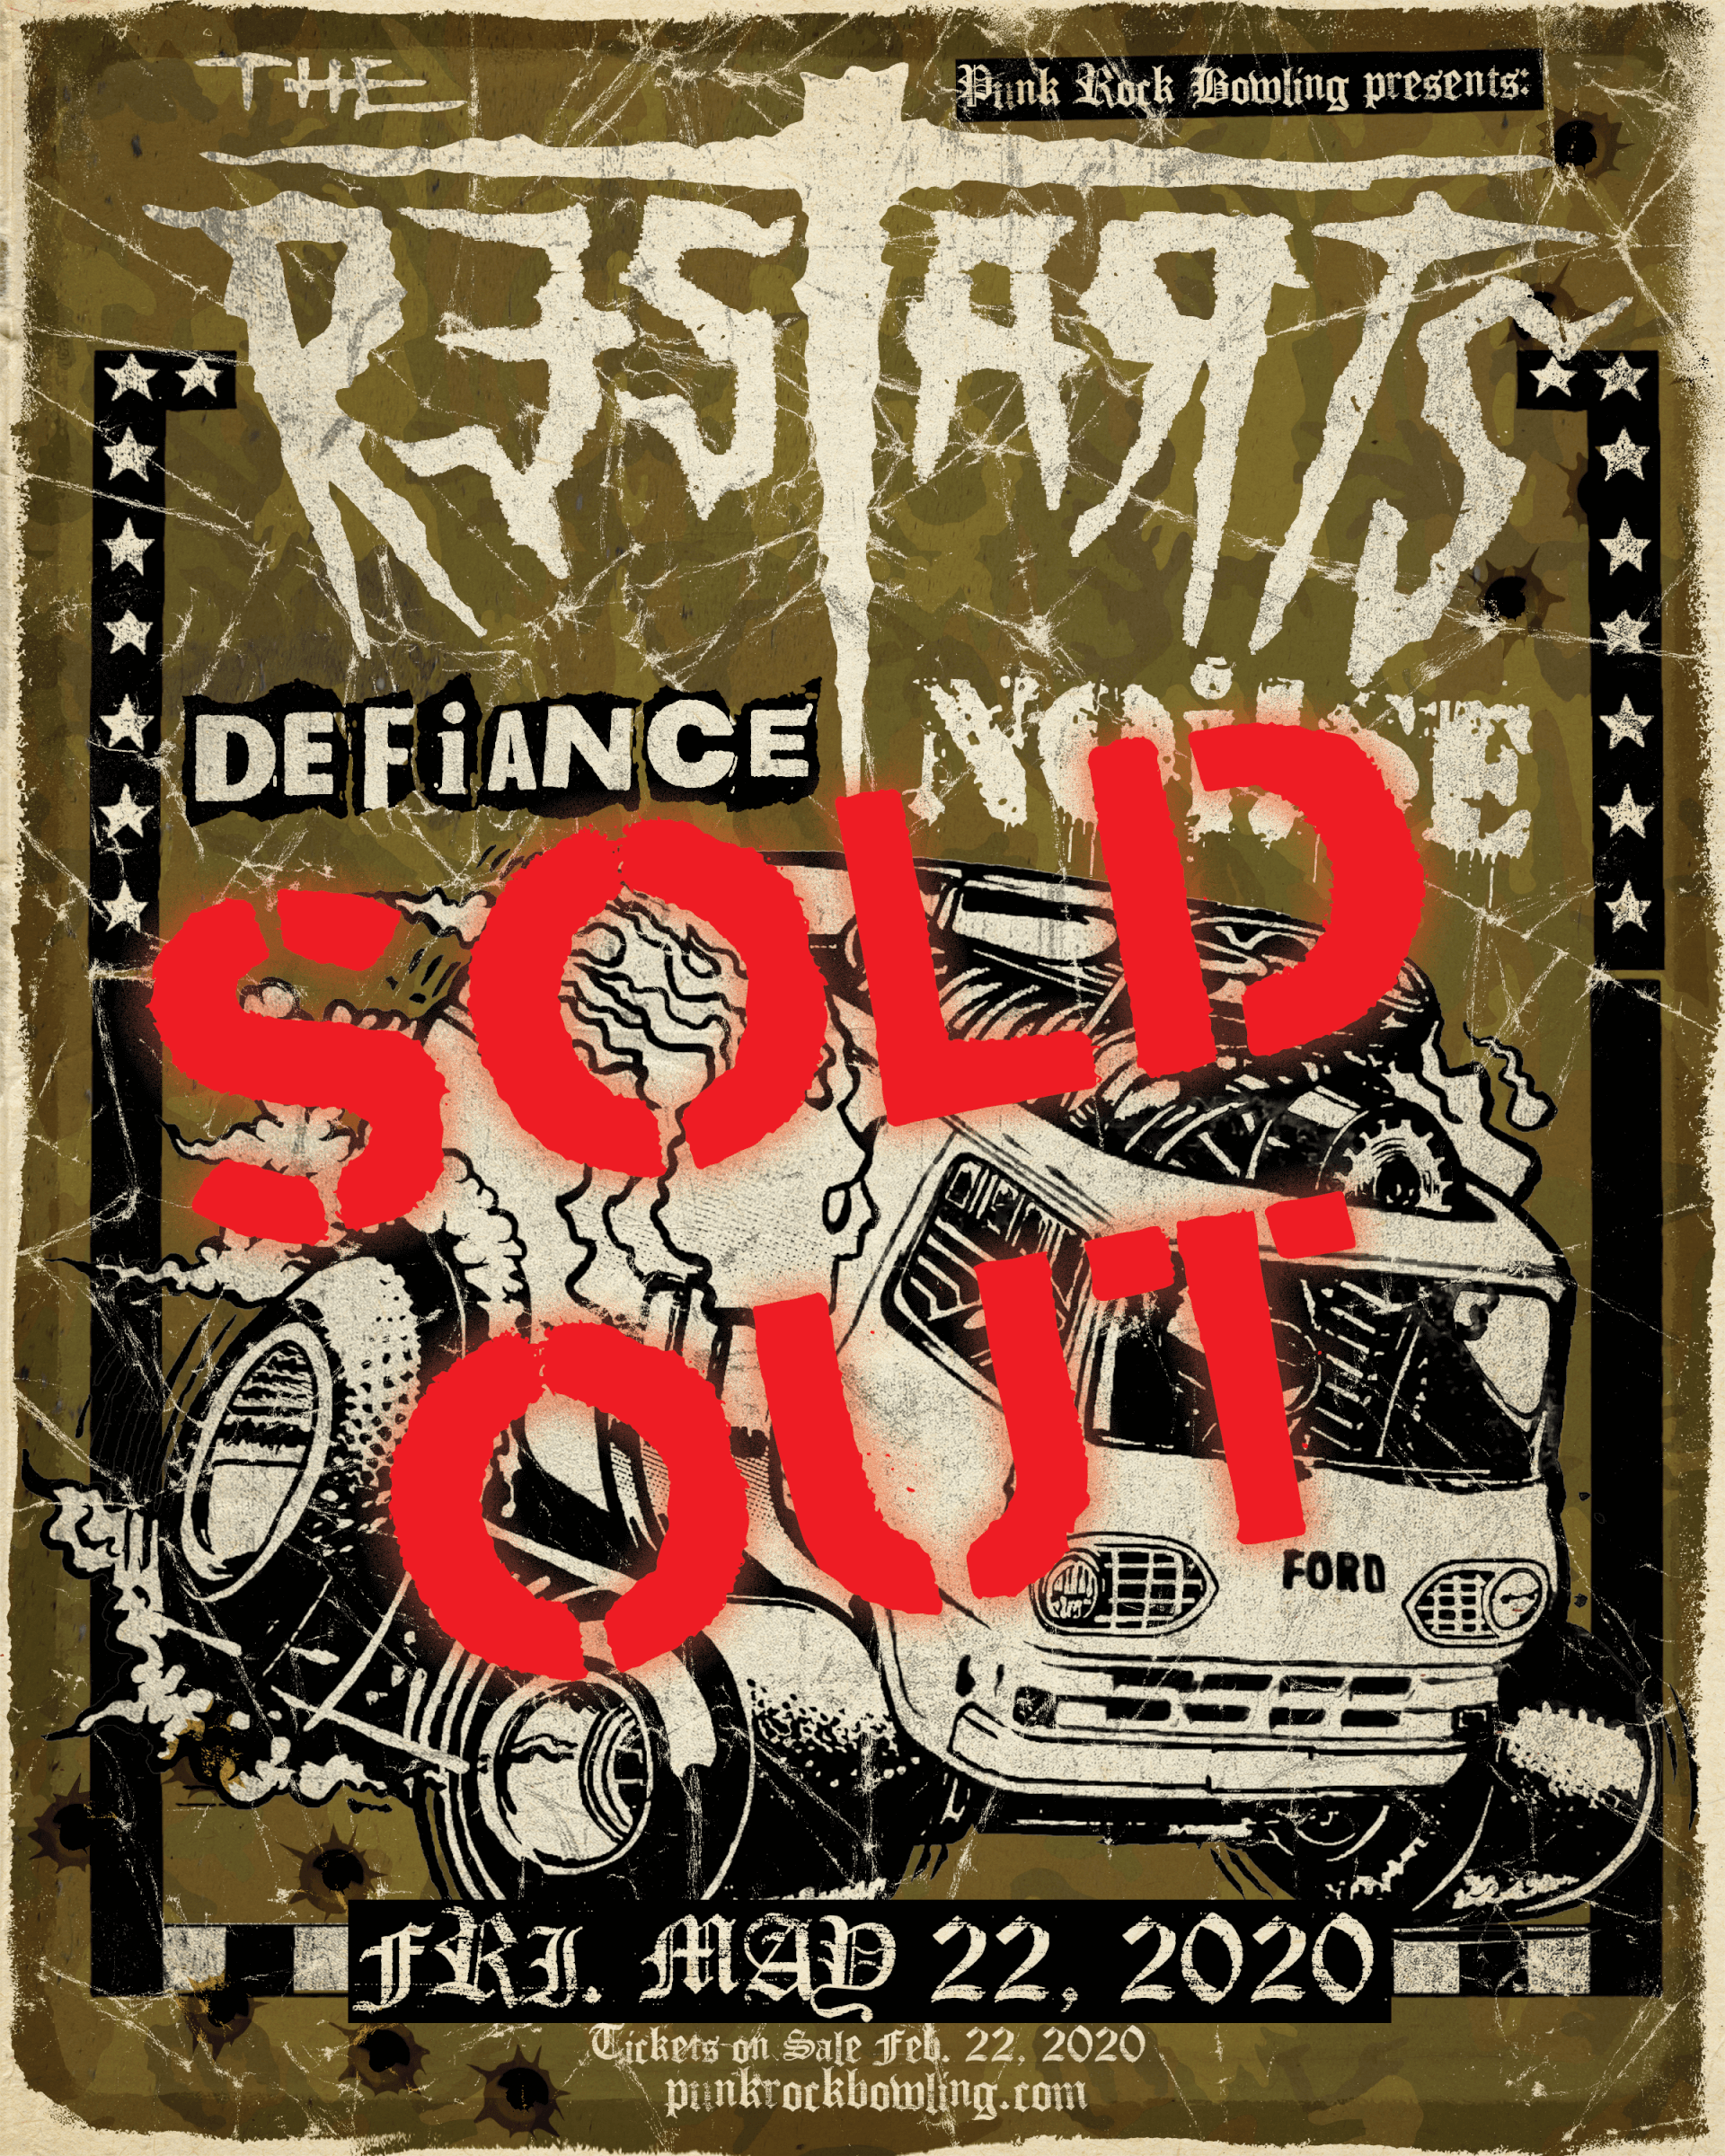 The Restarts Defiance Punk Rock Bowling 2020 Sold Out